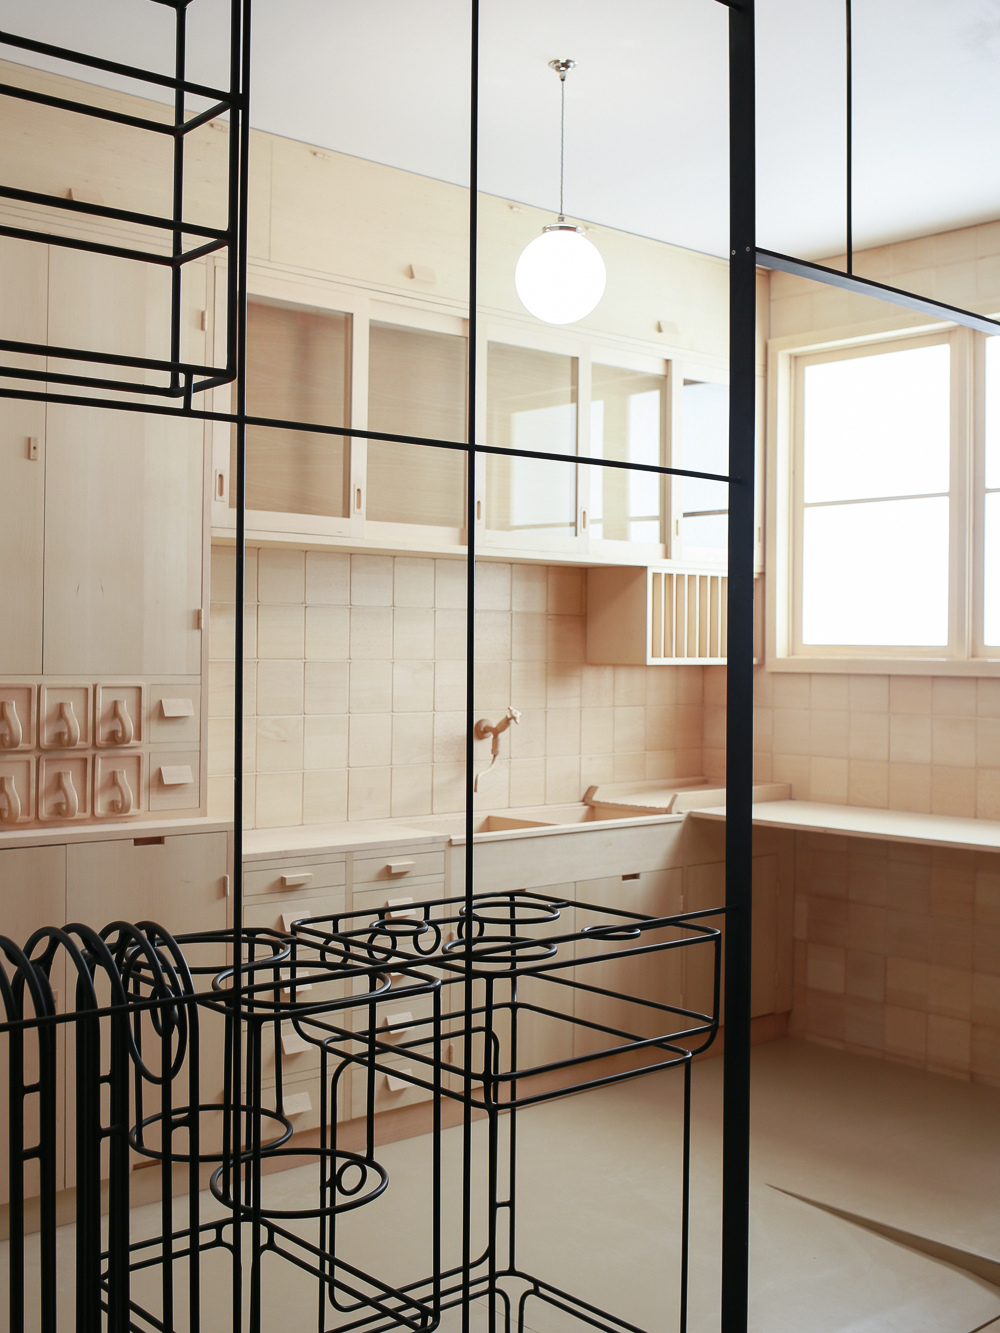 Model of the Frankfurt Kitchent | The Design Museum